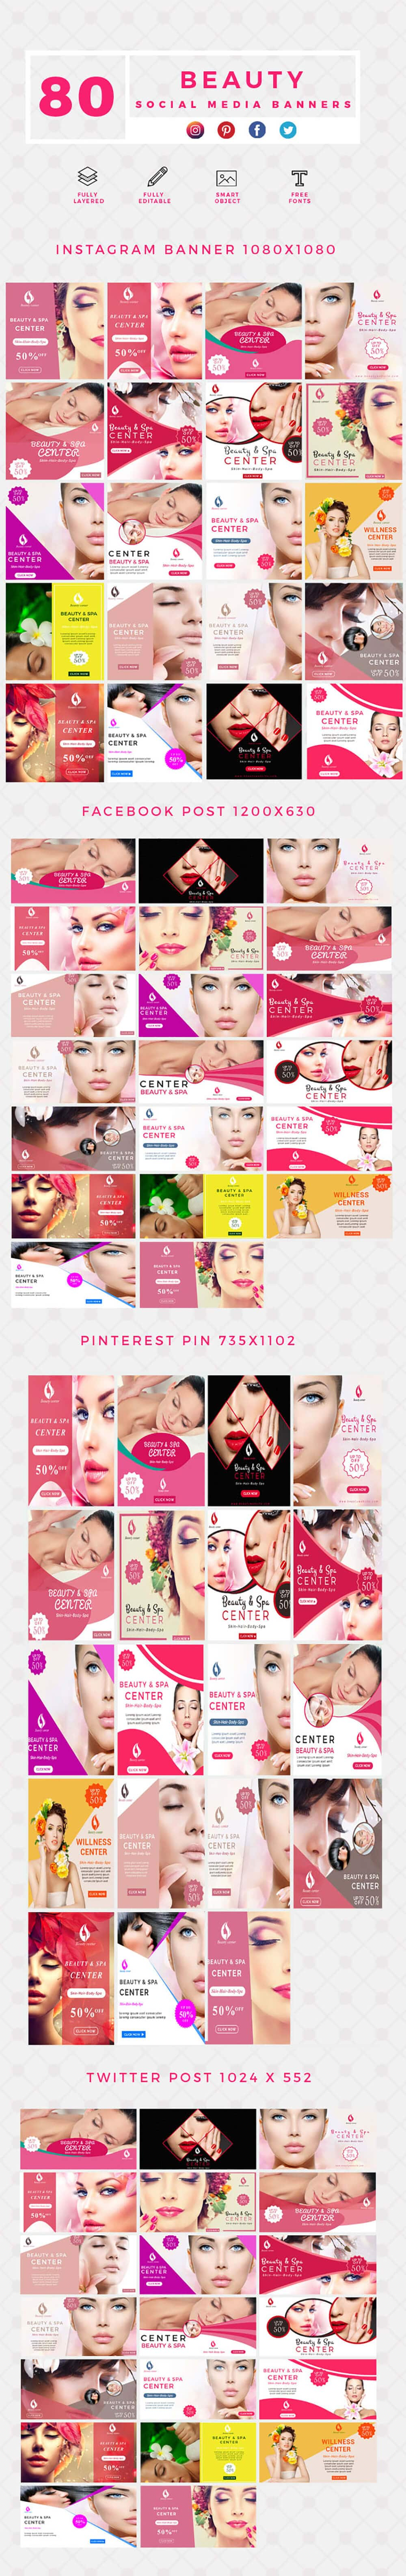 640 Templates for Facebook, Instagram, Twitter, Pinterest - $15 - PREVIEW BEAUTY min